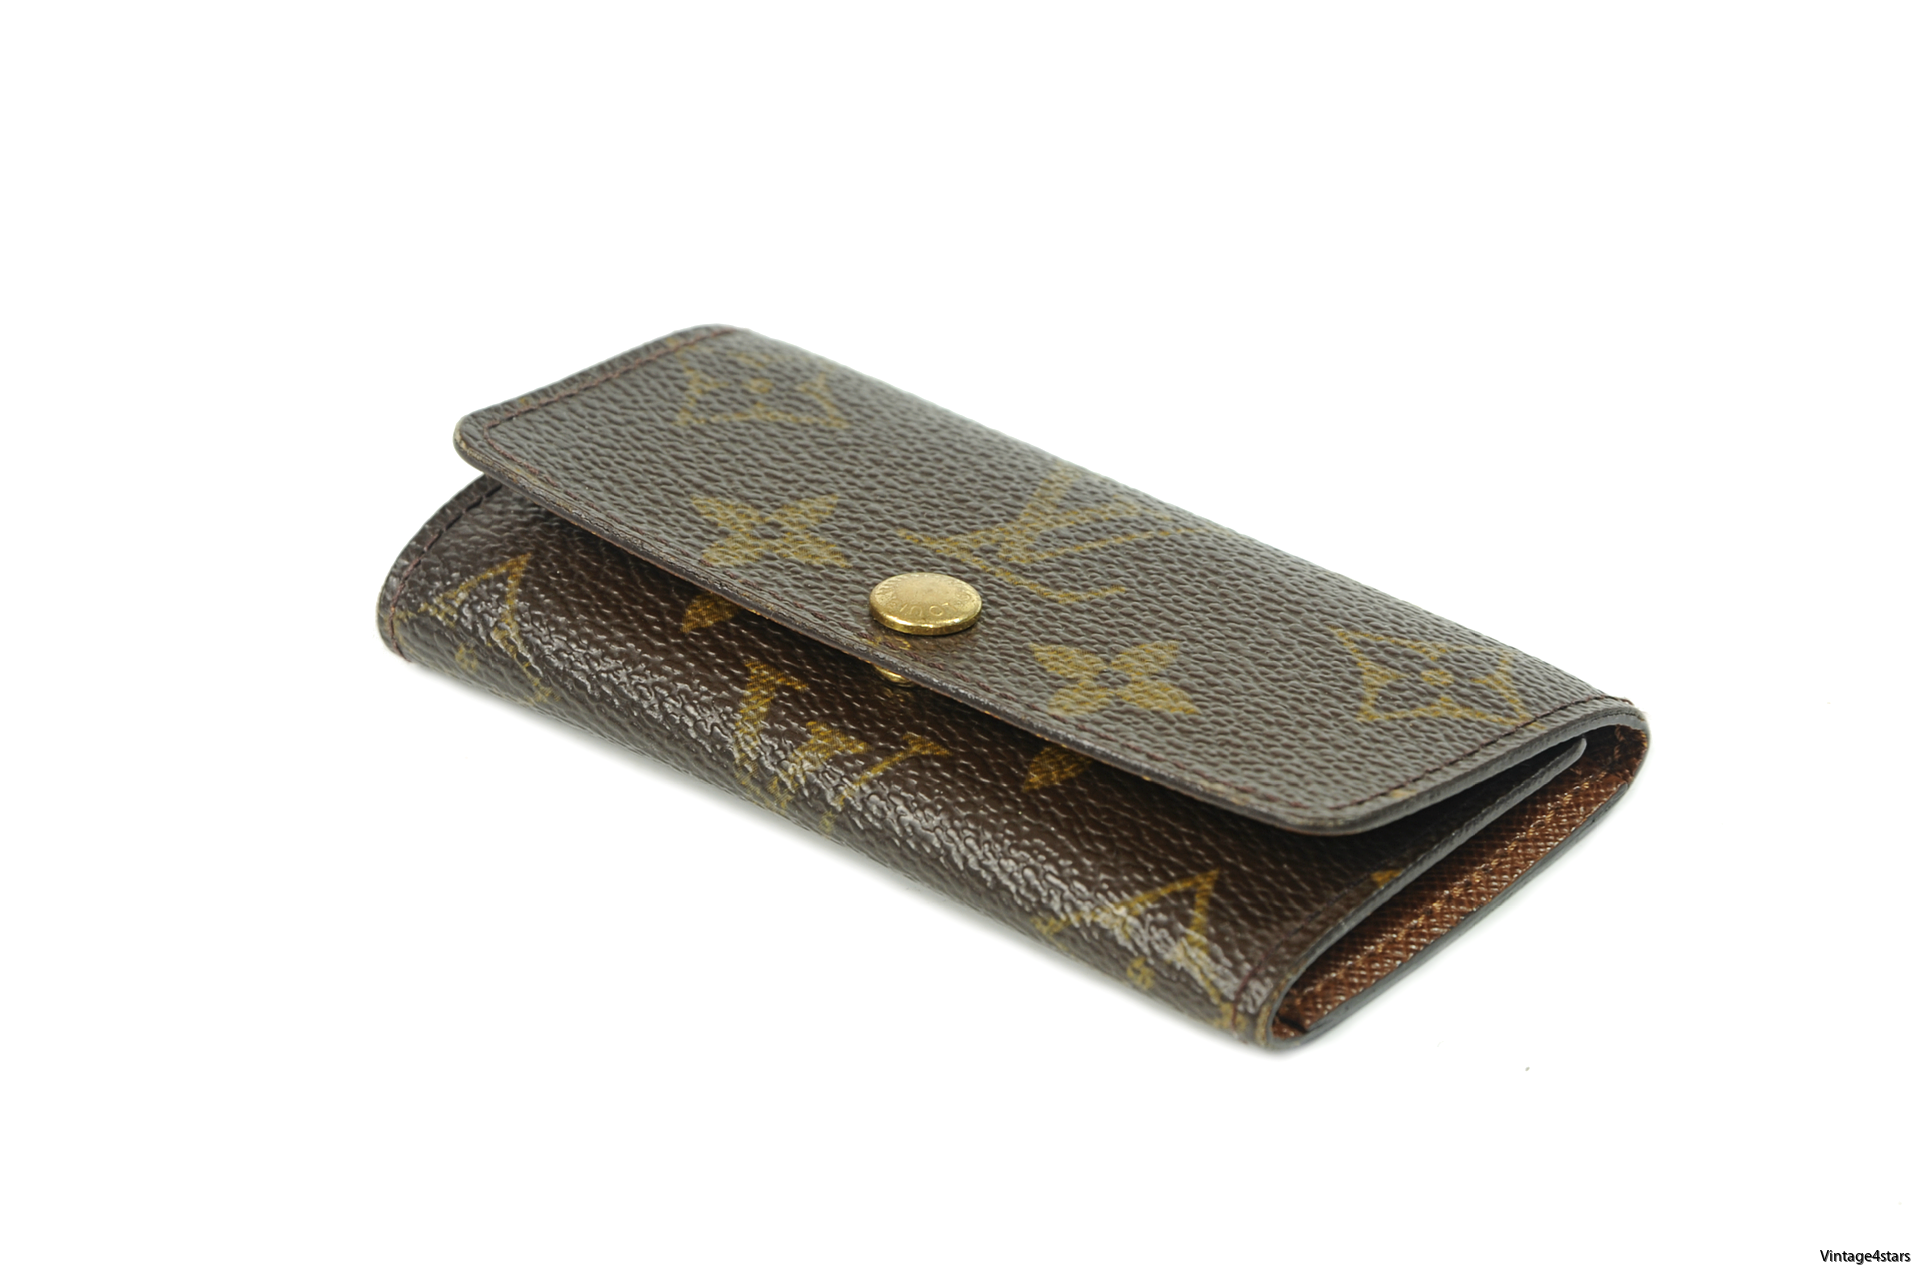 Louis Vuitton 4 Key Holder Monogram 1